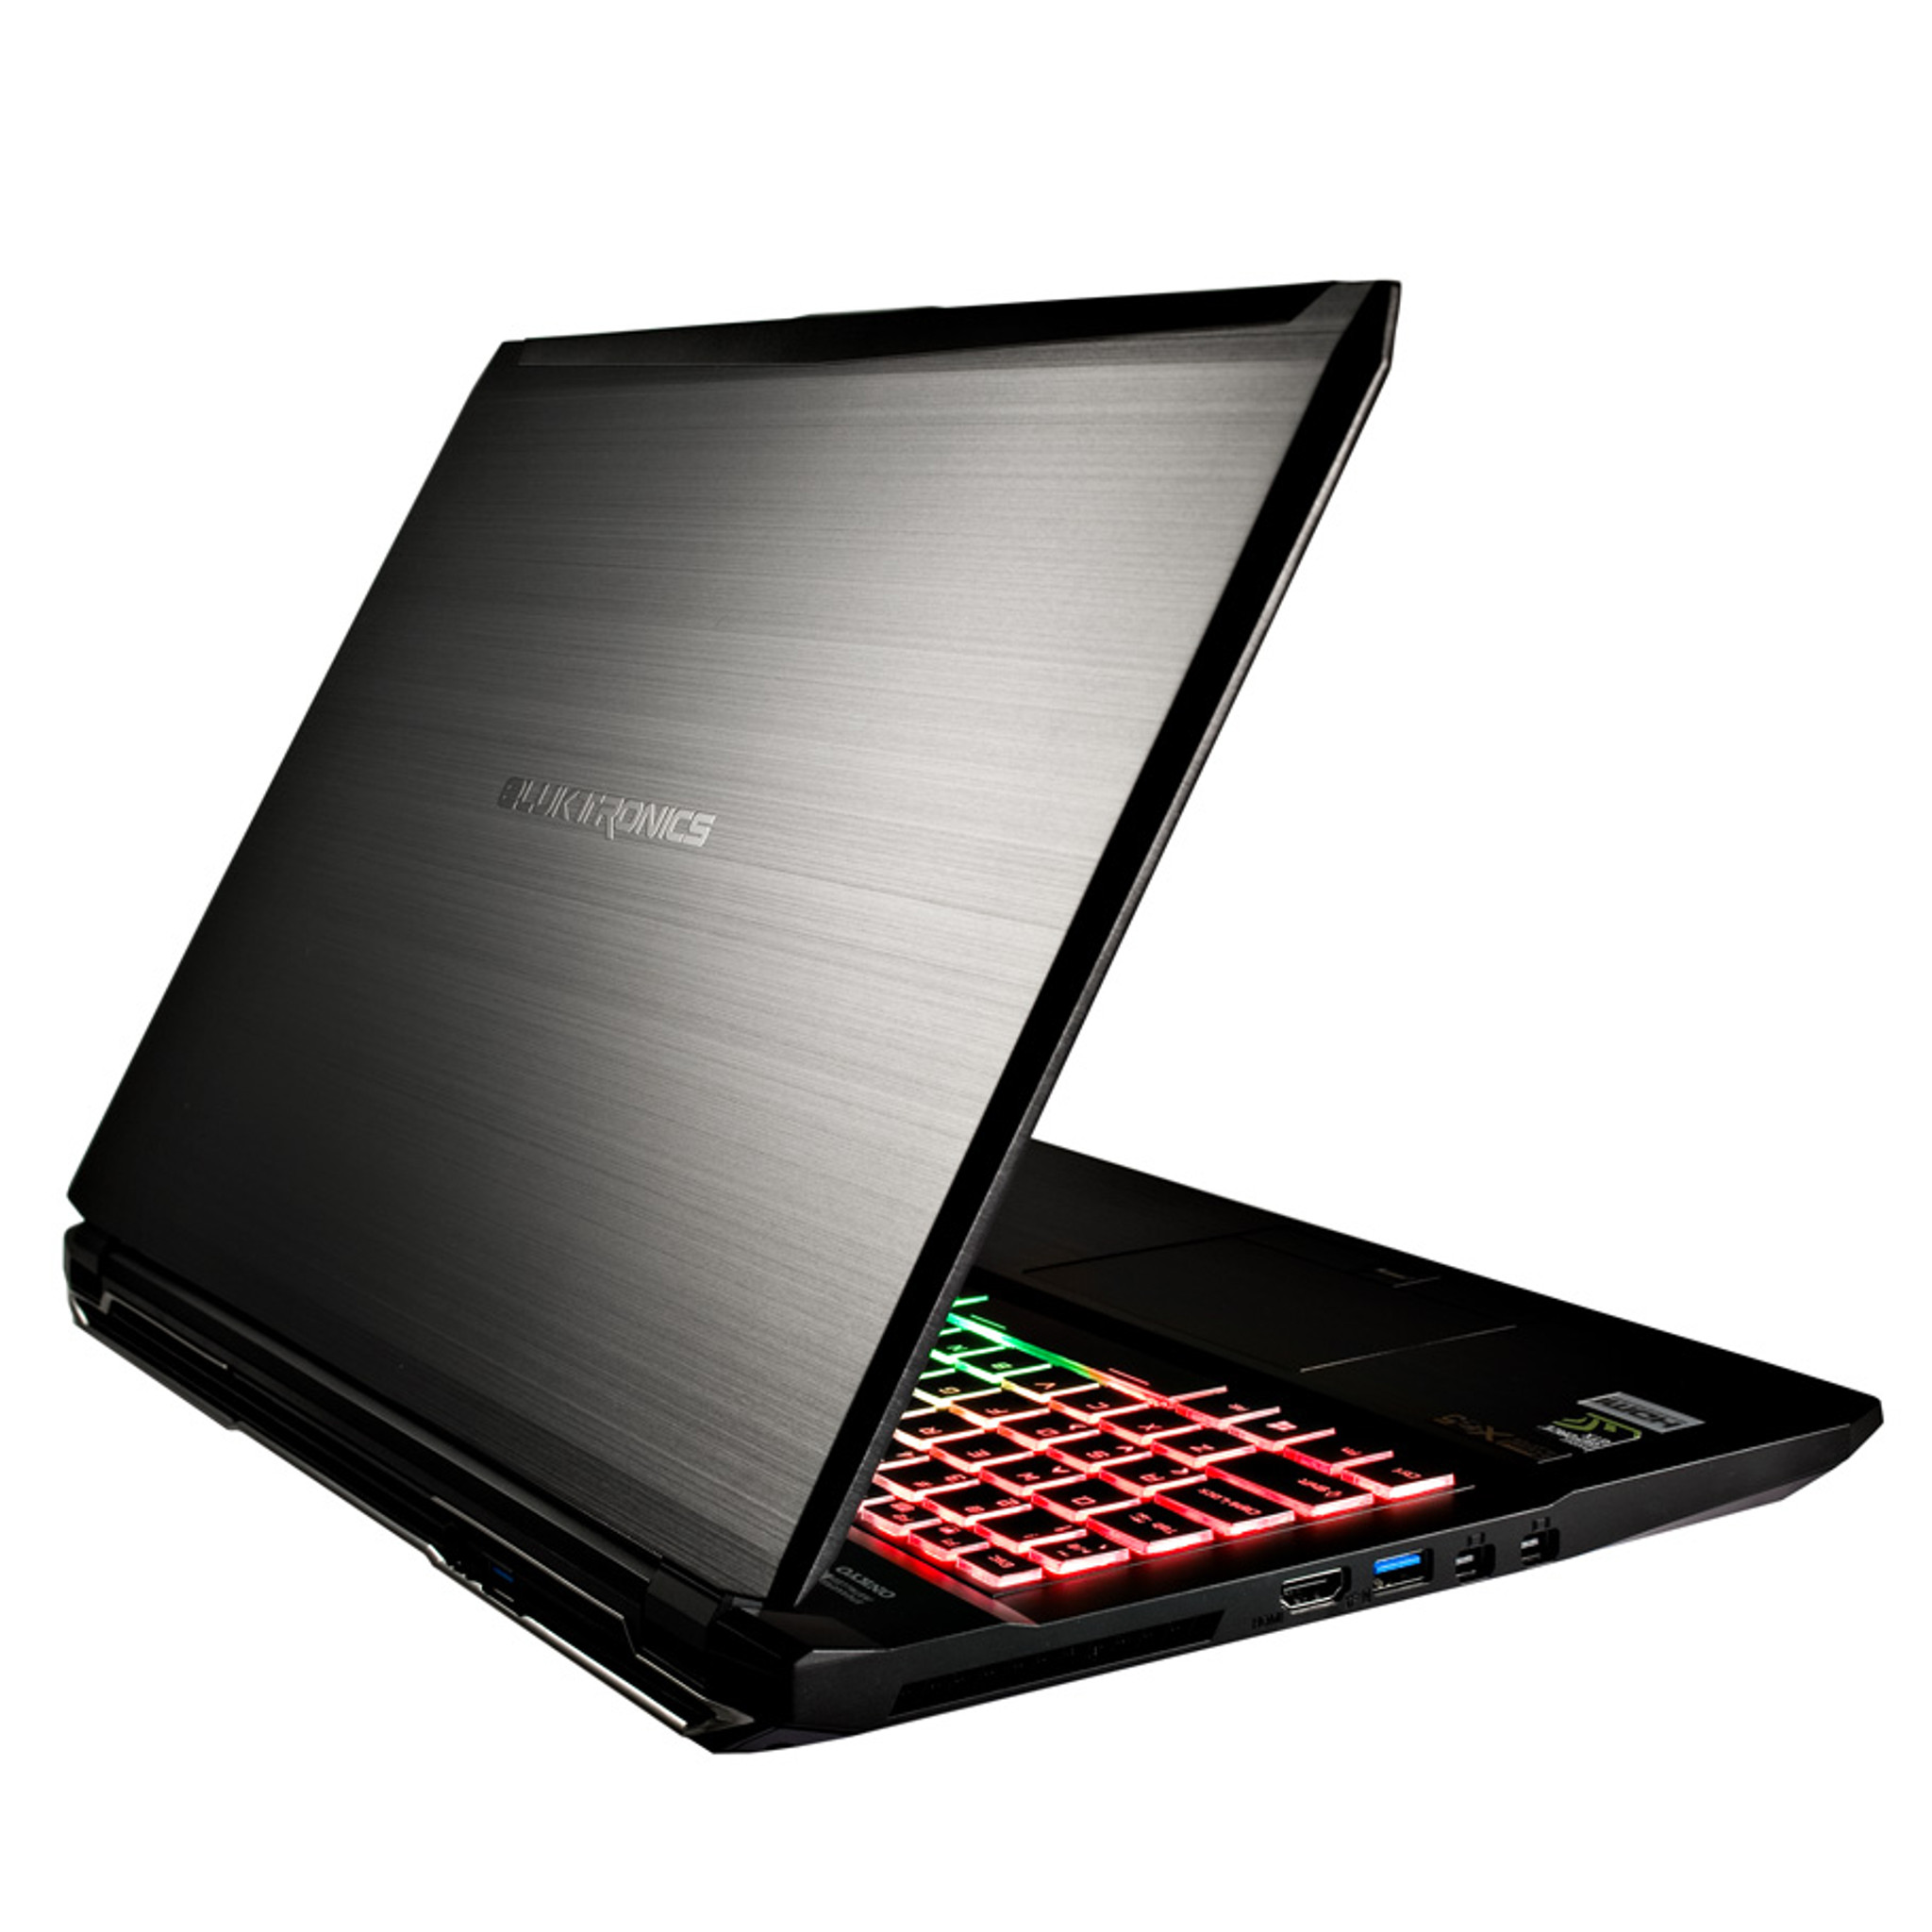 Eluktronics P650 Series 15 6-Inch NVIDIA® GeForce® GTX Gaming Laptop